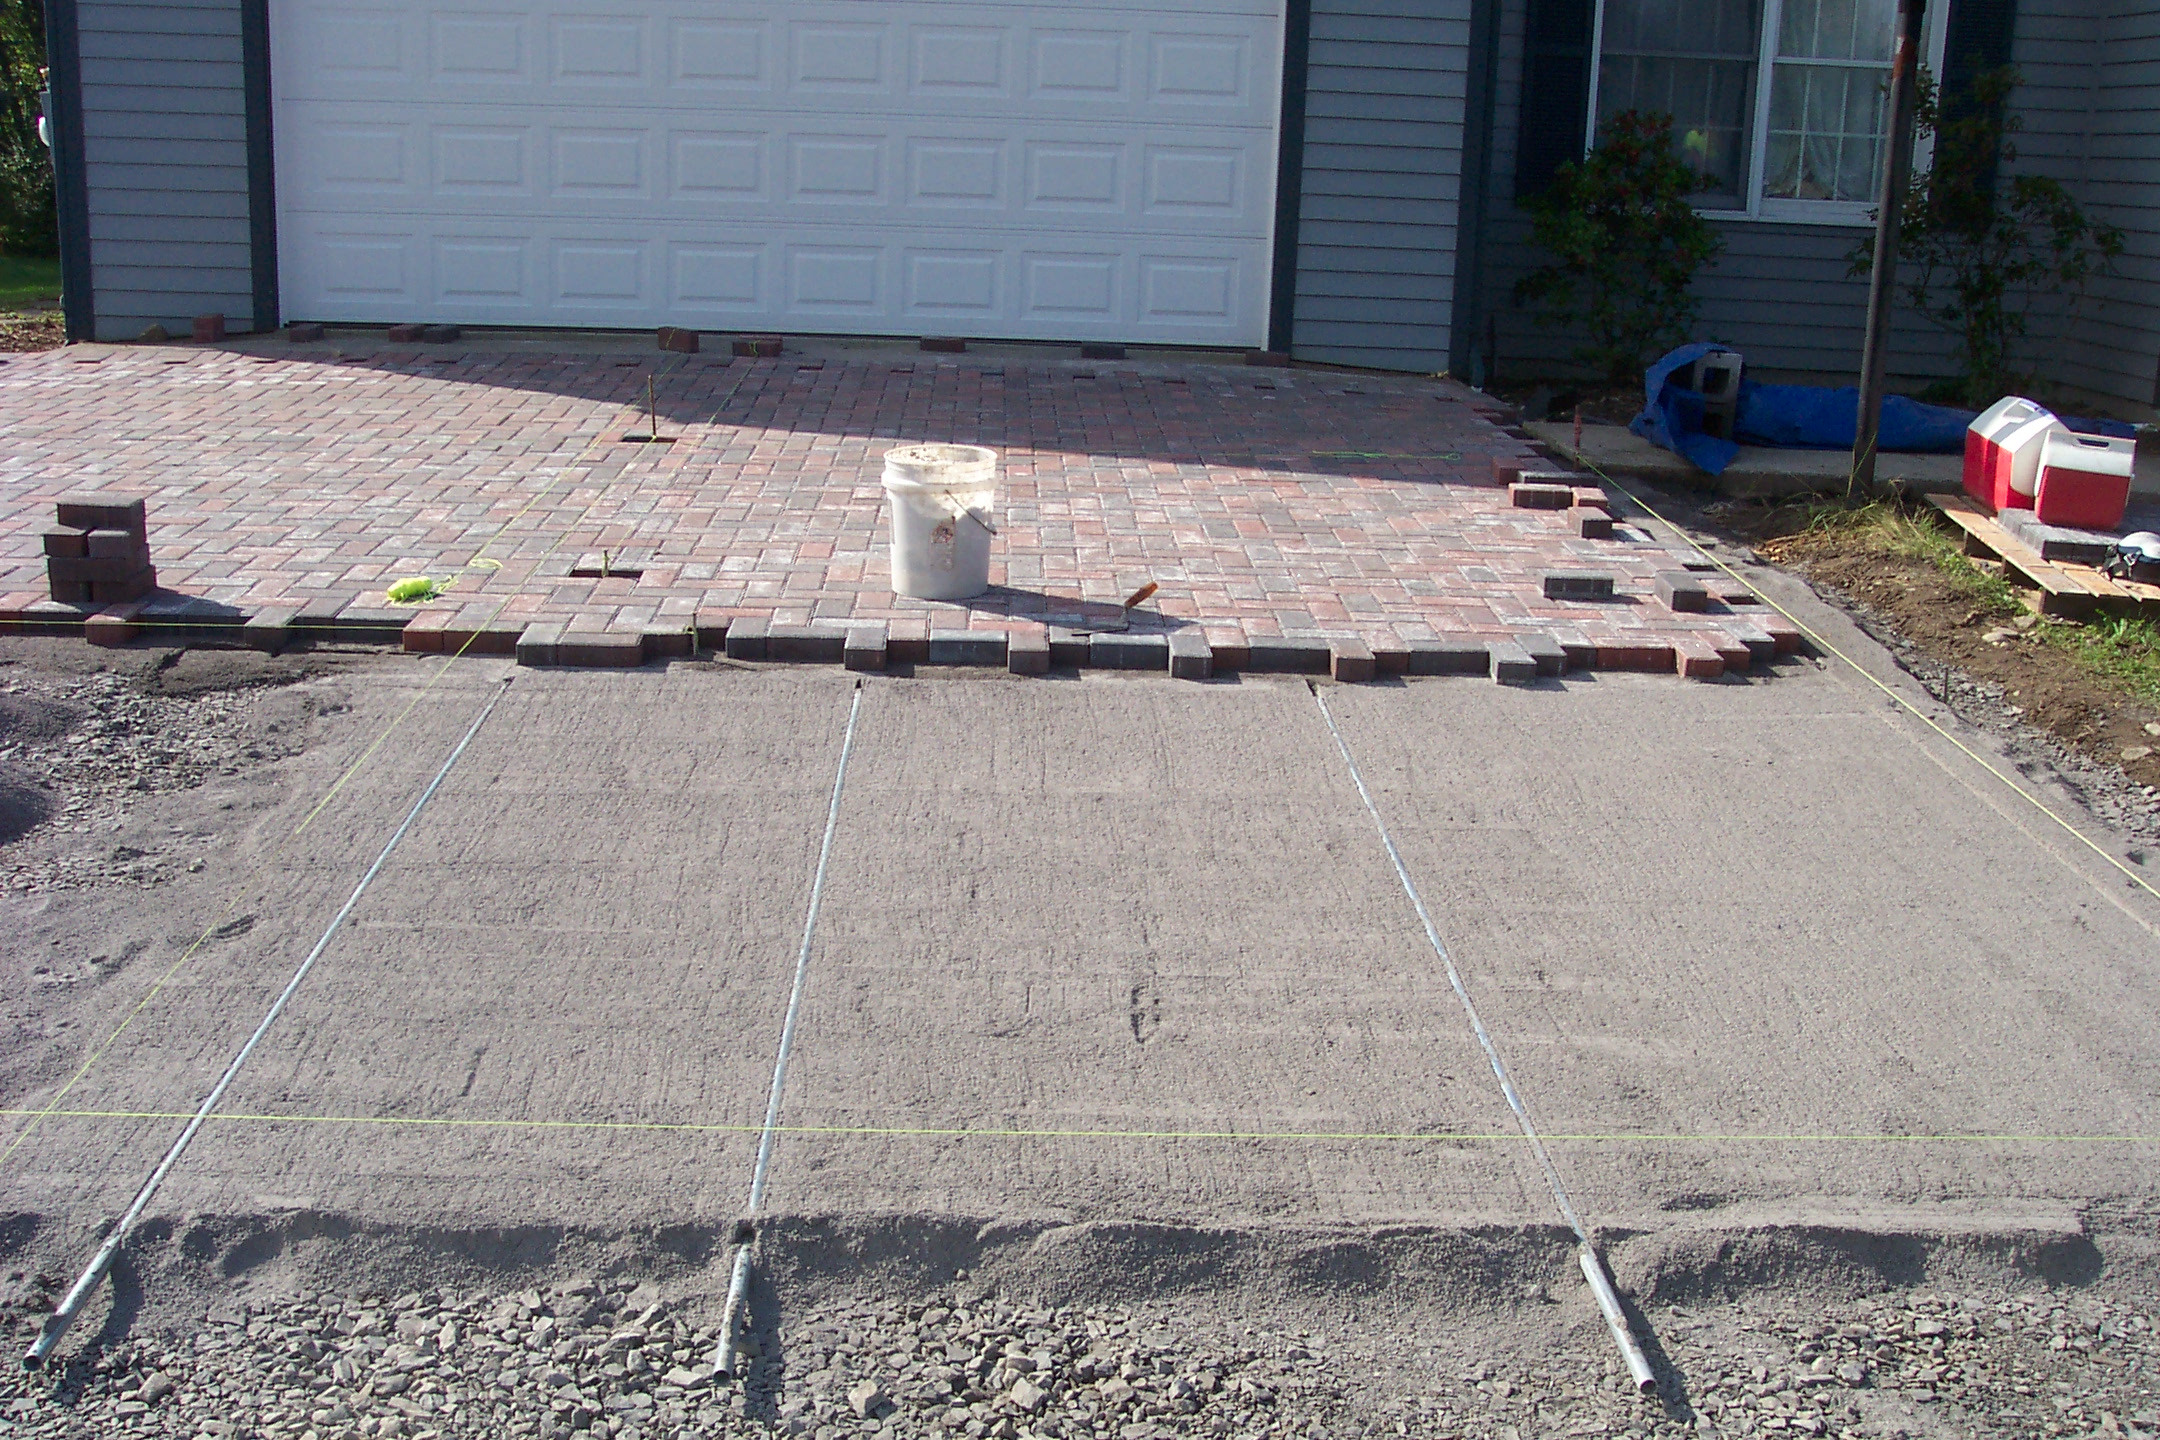 Best ideas about DIY Paver Driveway . Save or Pin Paver Driveway 4 Now.